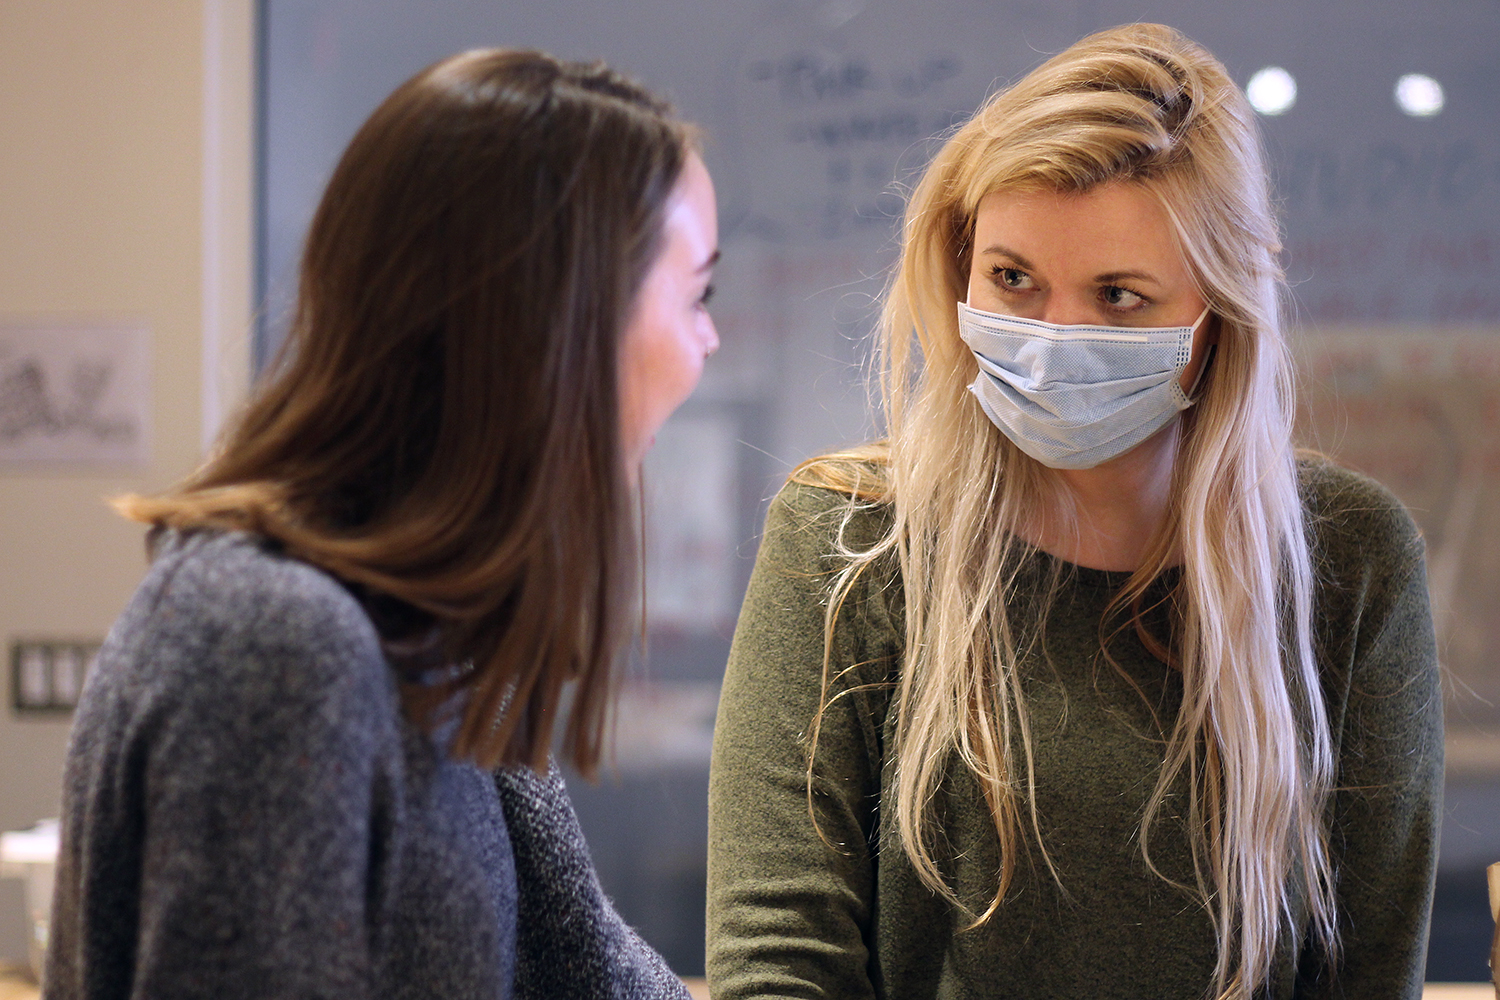 Art teacher Amanda Beller chats with senior Mallory Sailer in room E113 during eighth period on Thursday. Beller wore a mask during her classes this week as a precaution against the flu.